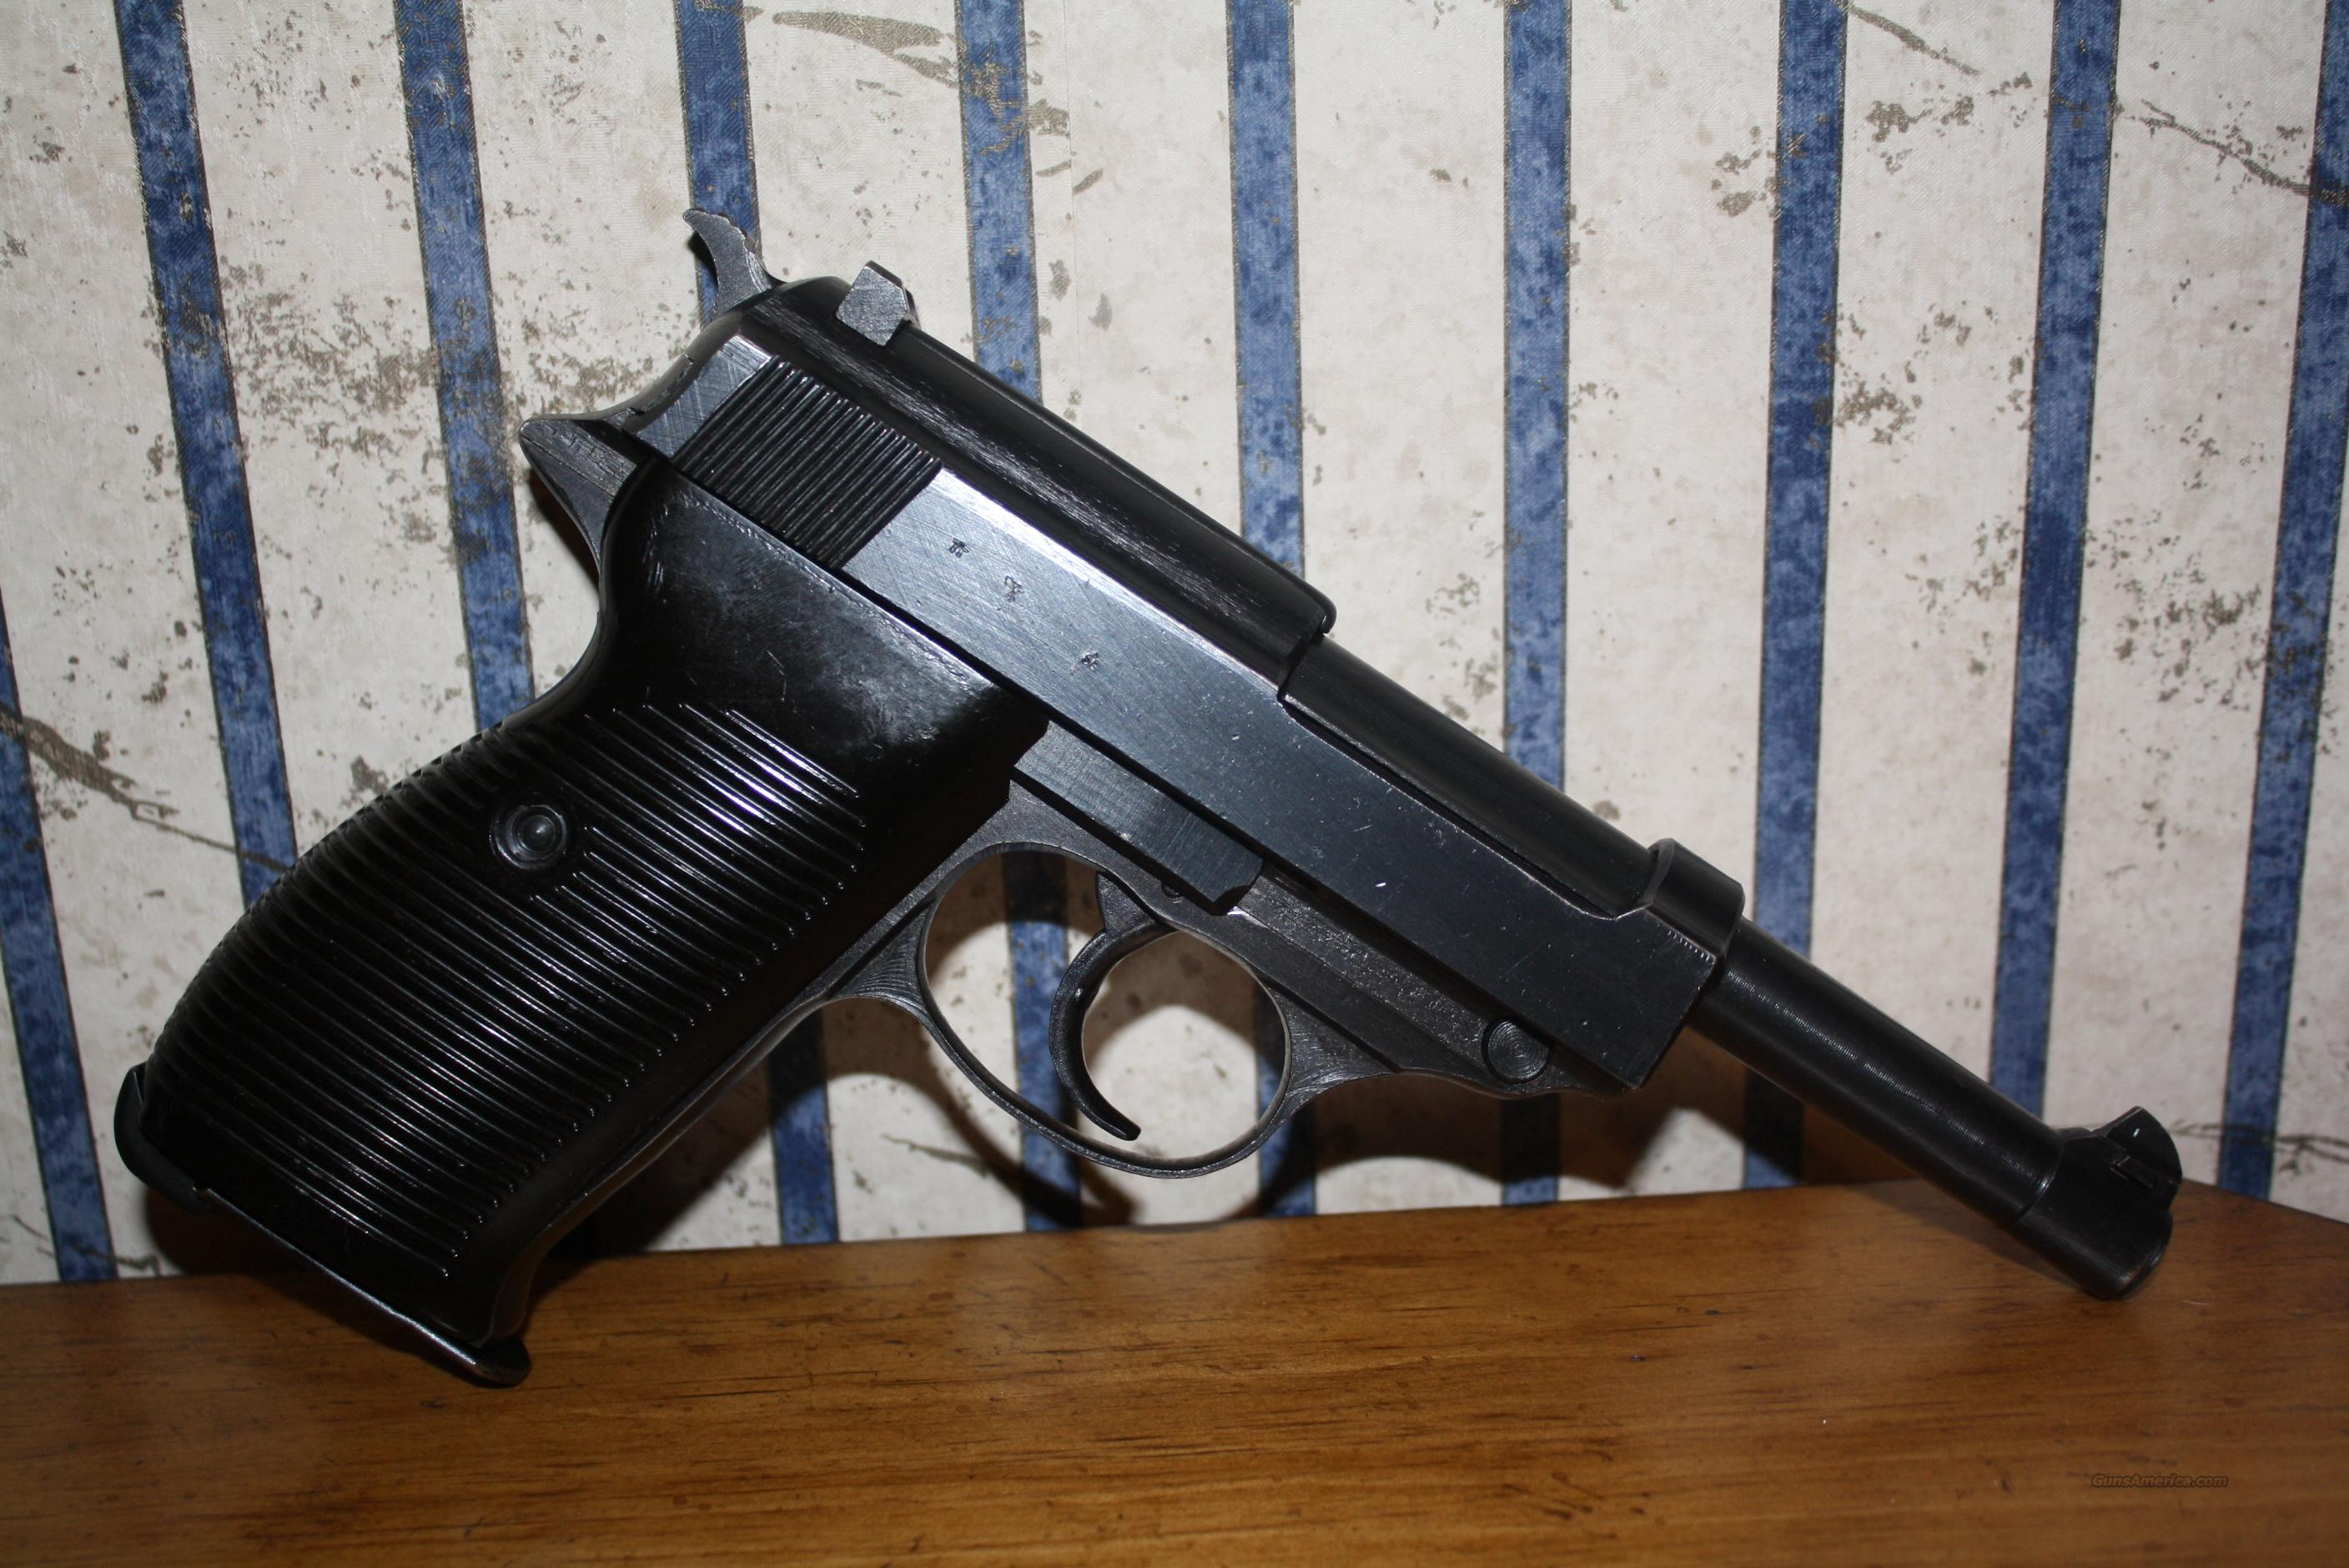 Walther P-38 cyq (Spreewerke) Production  Guns > Pistols > Walther Pistols > Pre-1945 > P-38